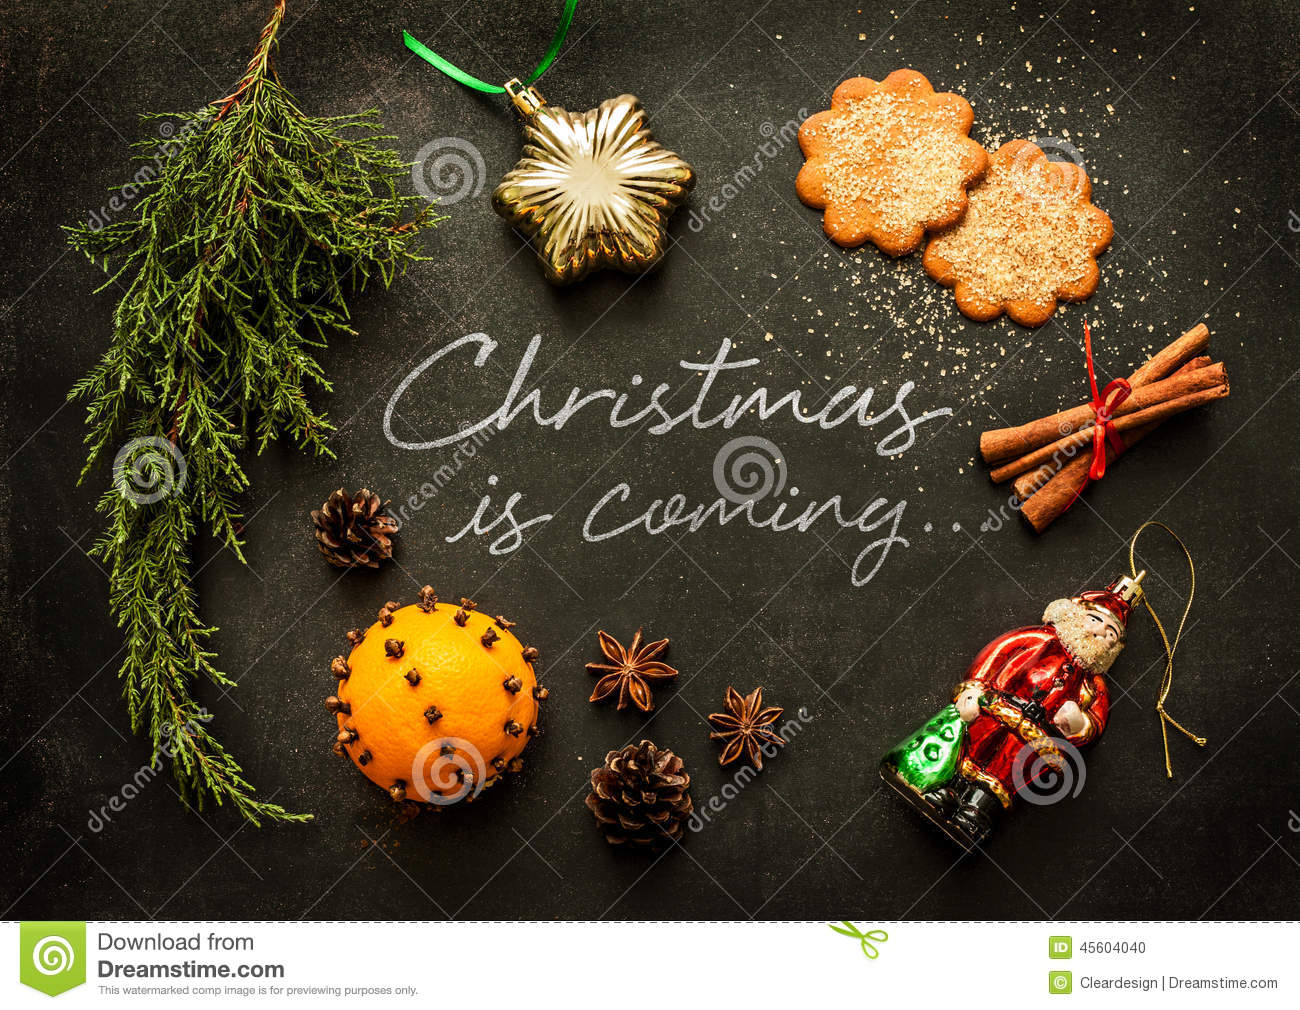 Xmas poster design - Above Black Chalkboard Christmas Coming Cookies Design Ginger Postcard Poster